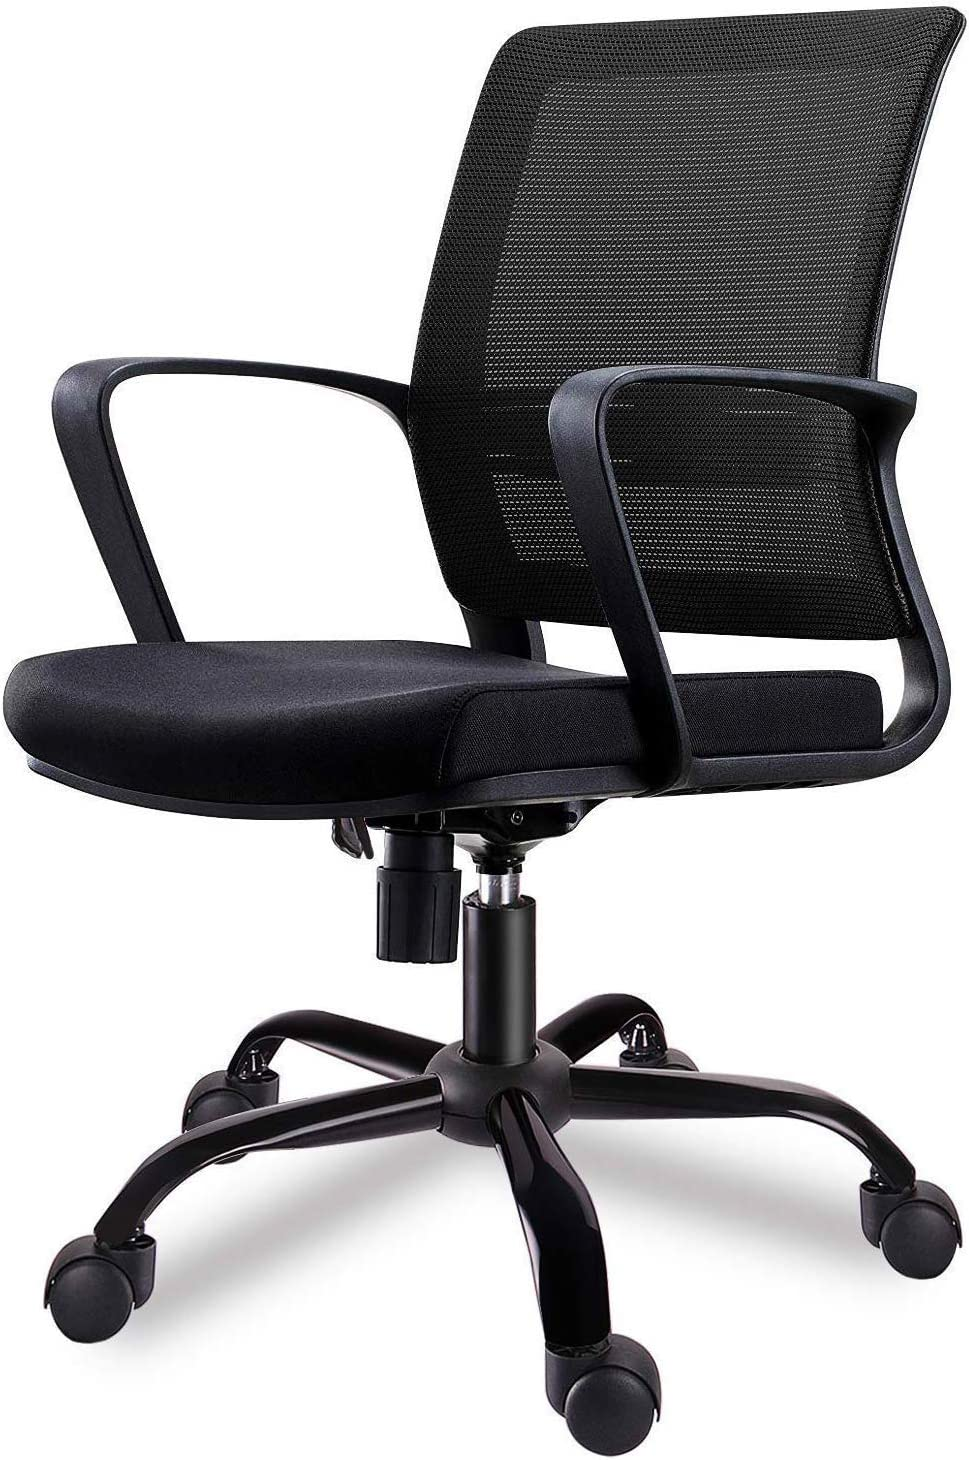 Smugdesk Mid-Back Ergonomic Office Lumbar Support Mesh Computer Desk Task Chair with Armrests: Kitchen & Dining